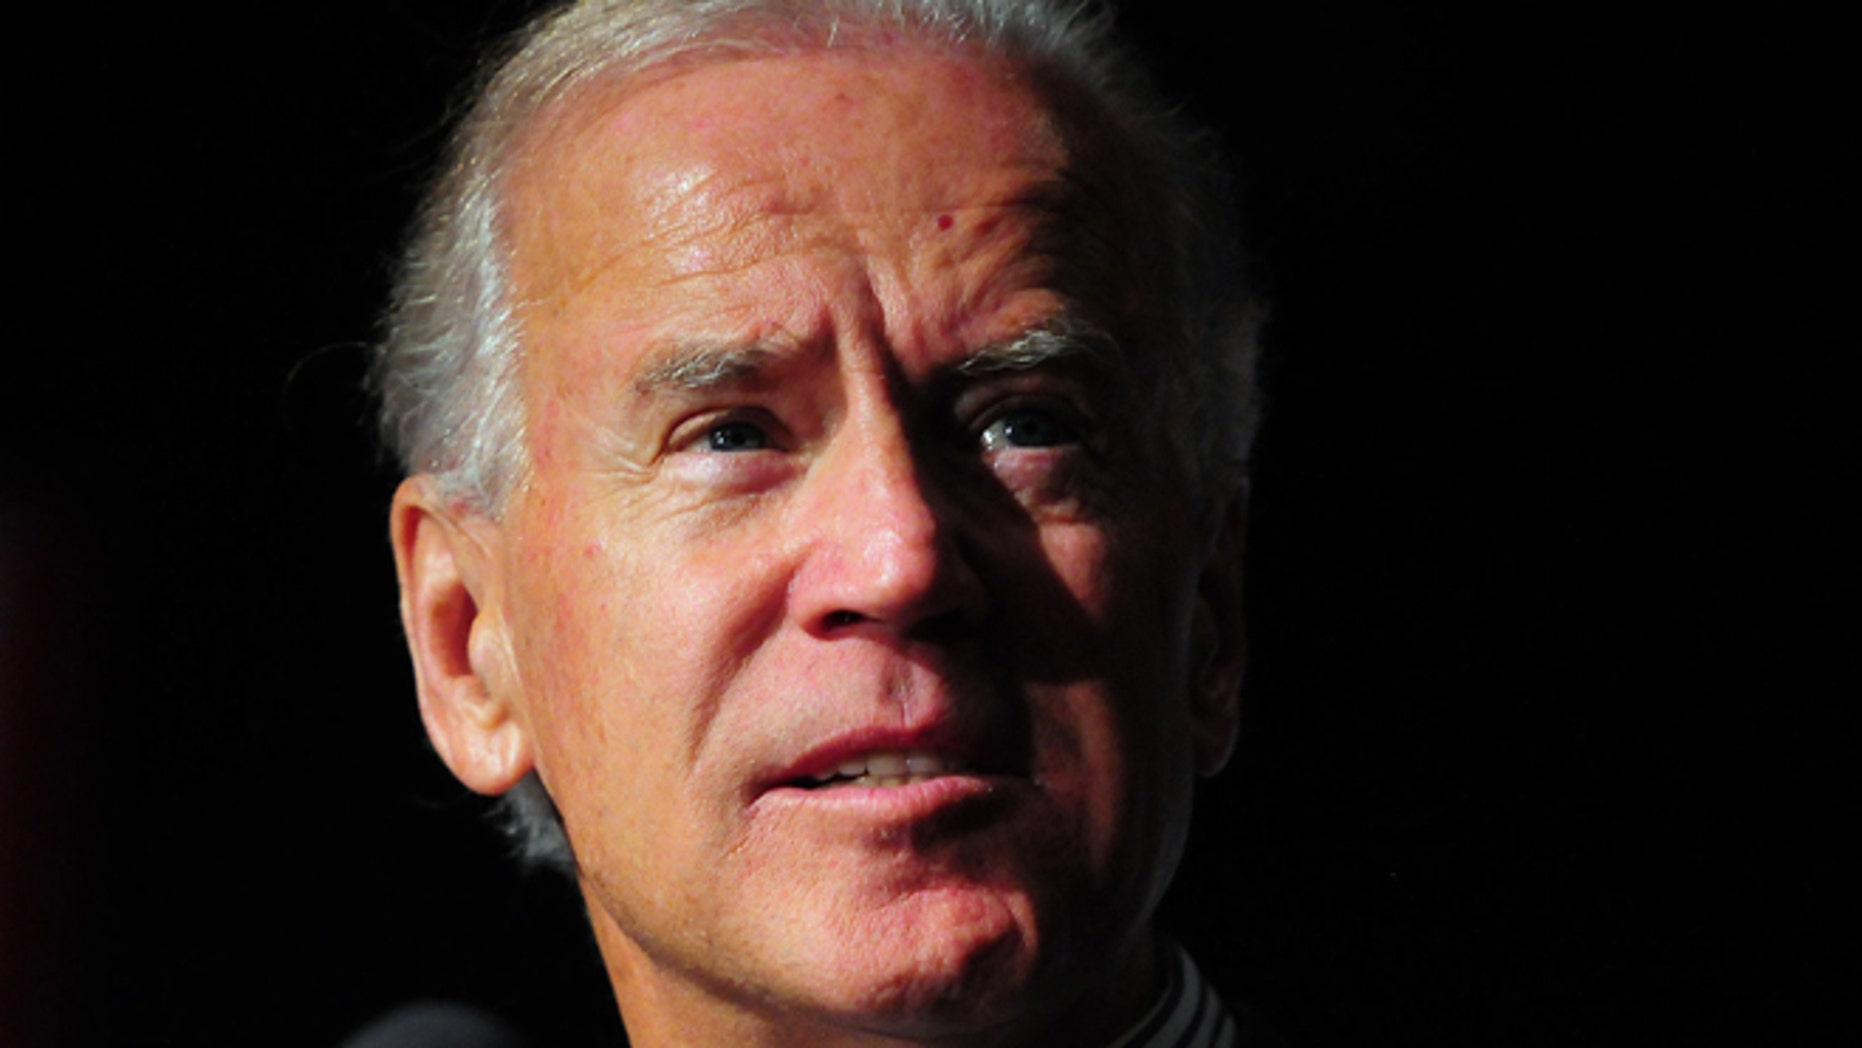 Oct. 2, 2012: Vice President Biden speaks to supporters in Charlotte, N.C. at The Fillmore.